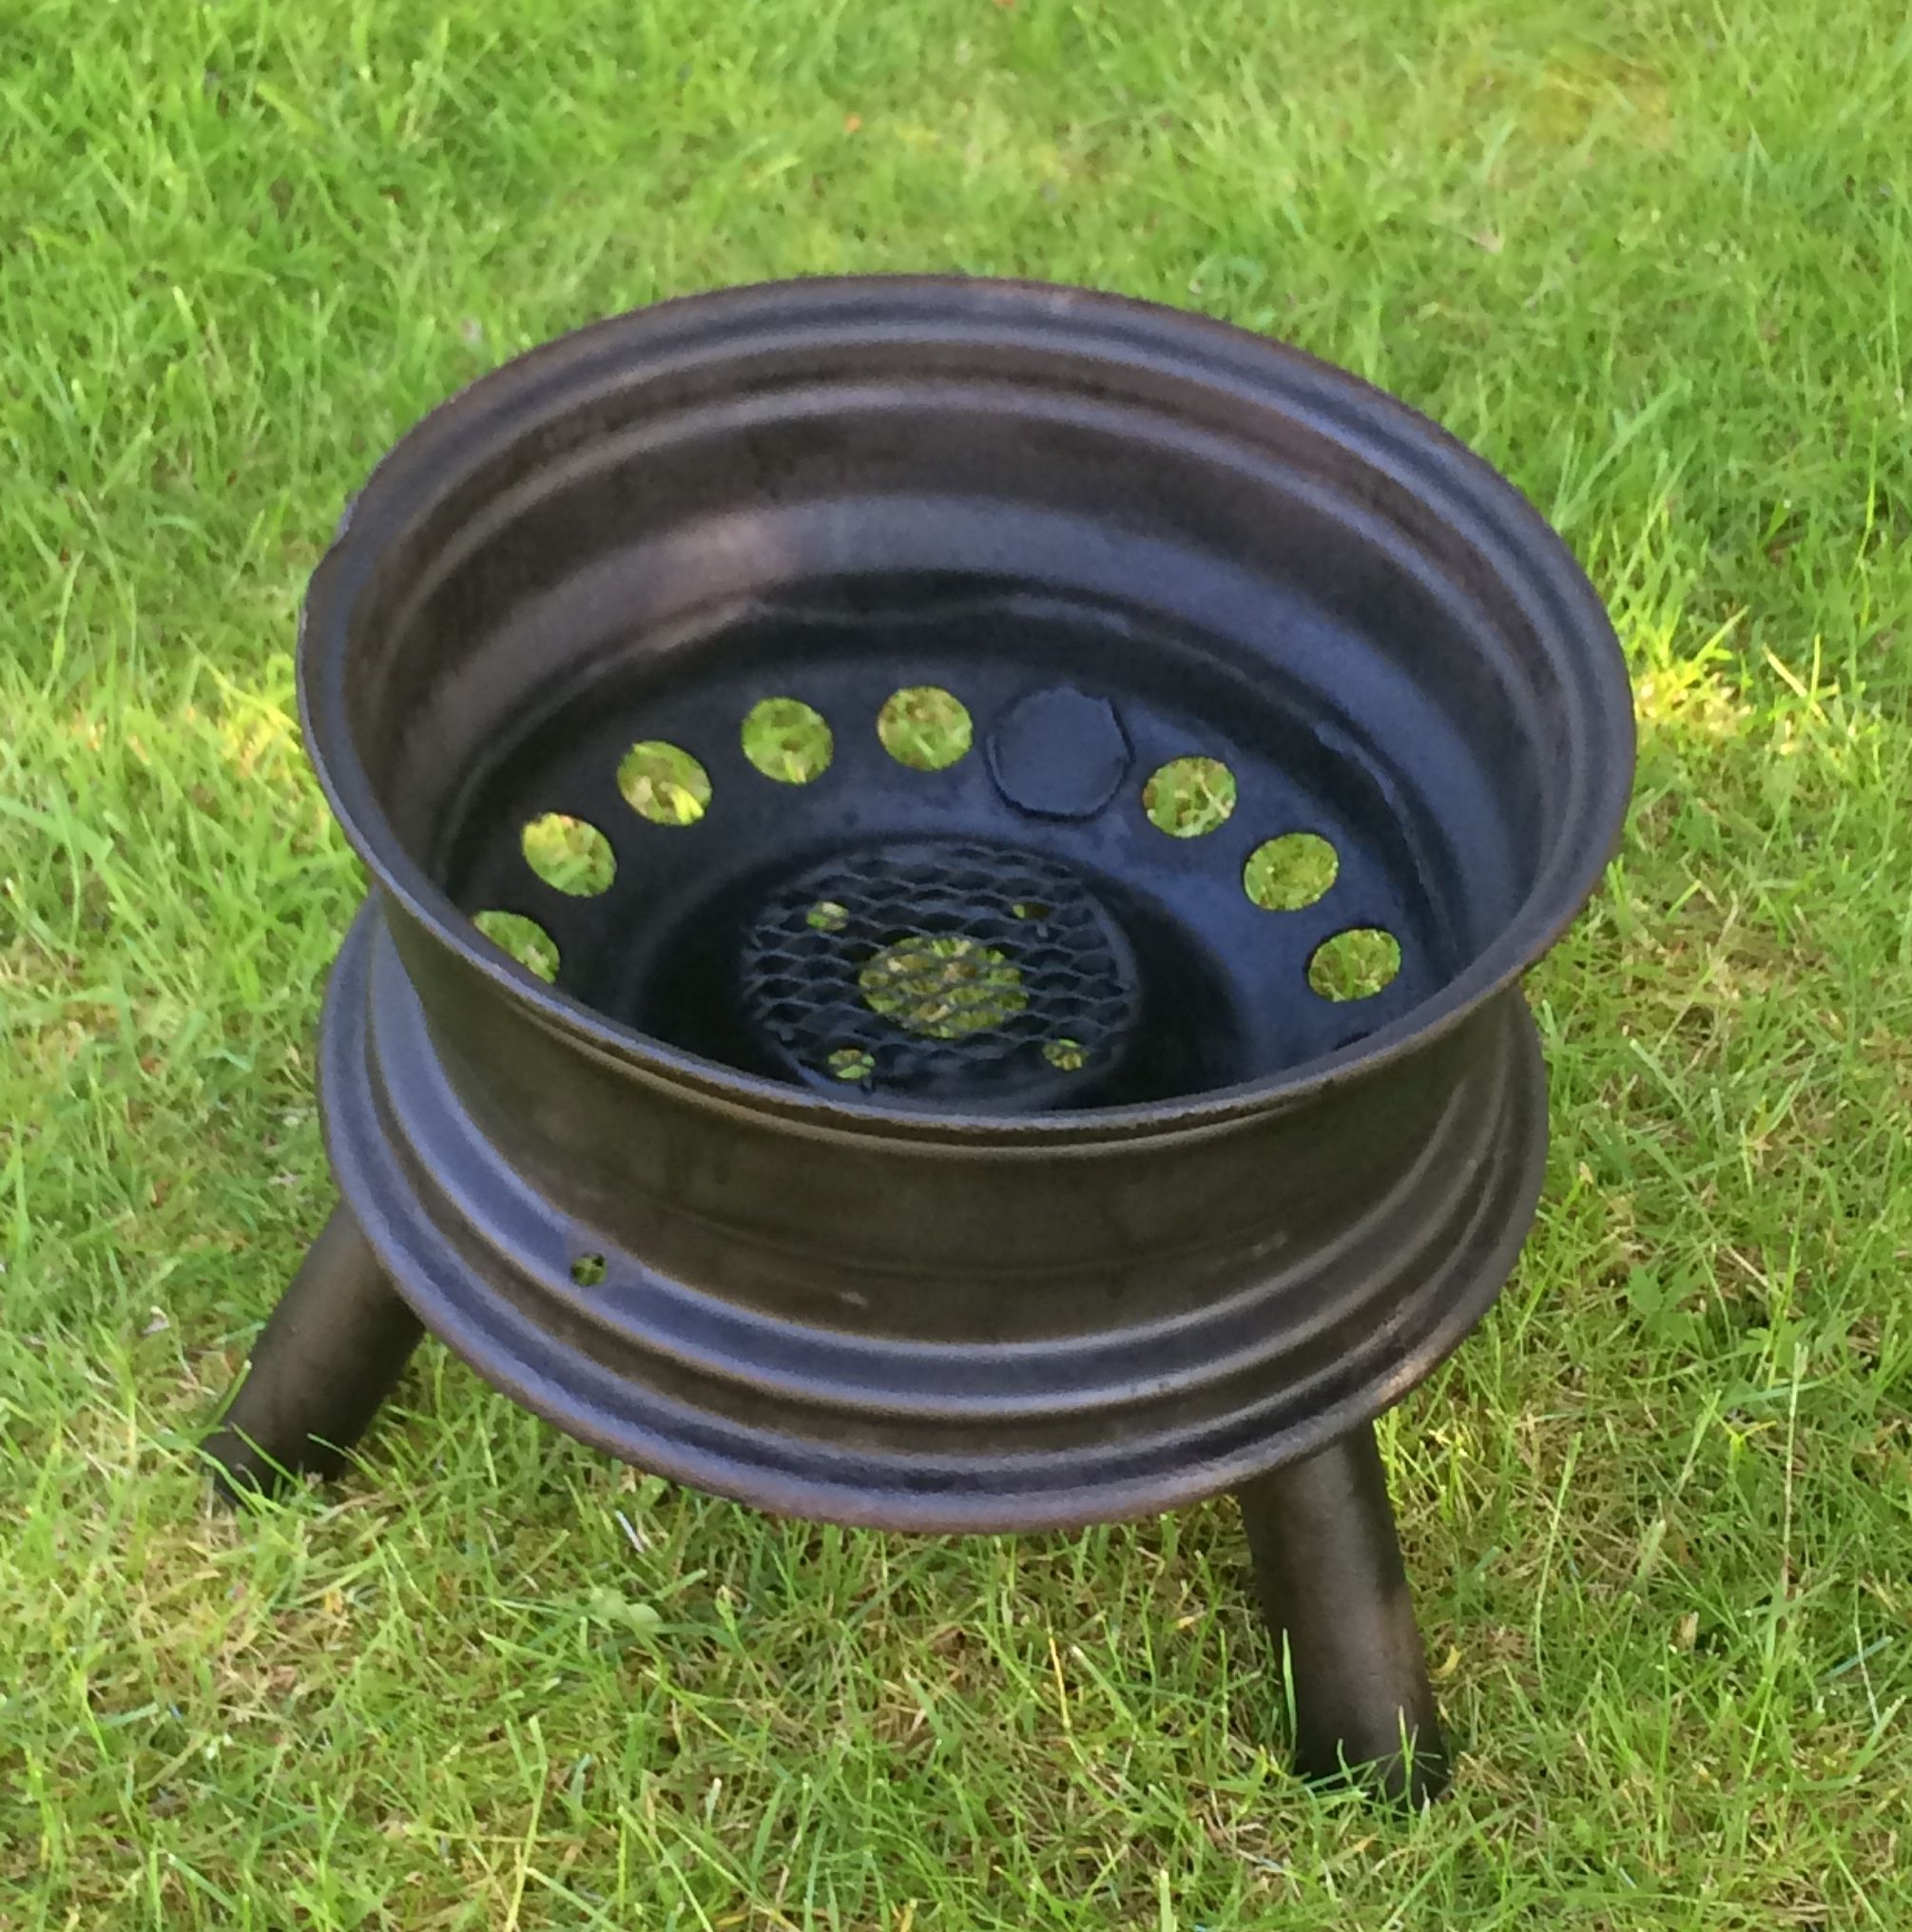 Garden Patio Fire pit wood Log Burner made from a car Wheel in 2019 | Rim fire pit, Wheel fire ...